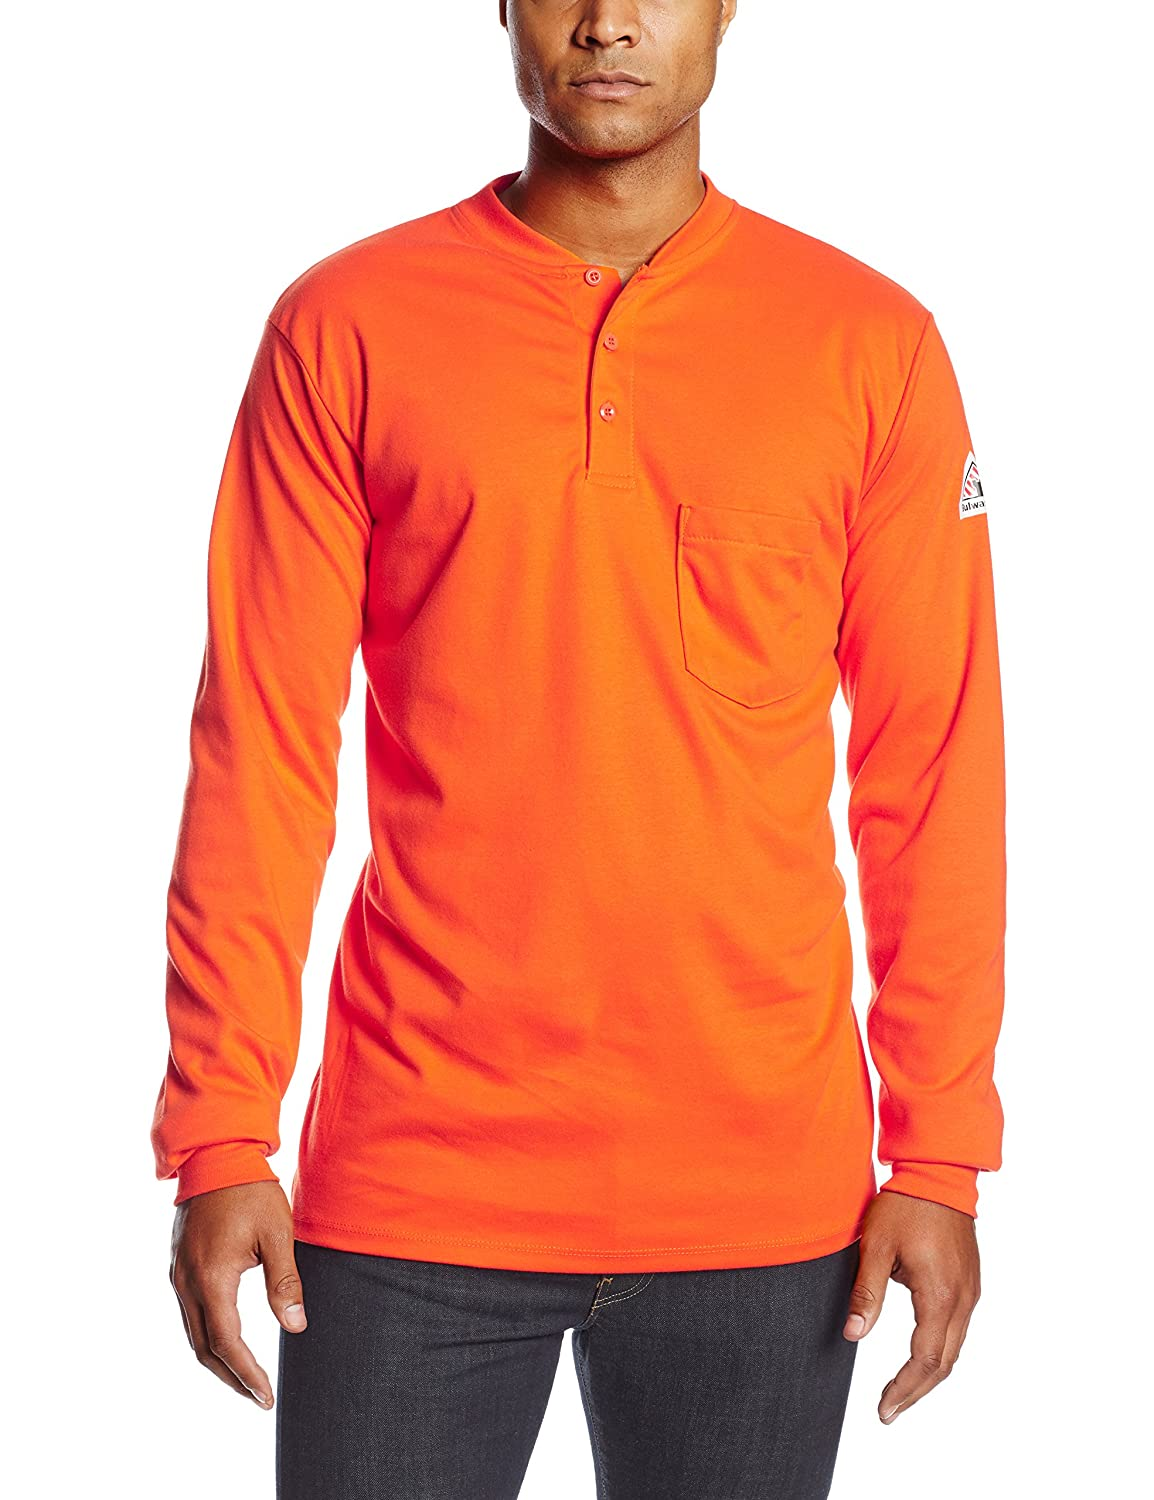 9fc00a74125 Top1  Bulwark Flame Resistant 6.25 oz Cotton Excel FR Mens Long Sleeve  Tagless Henley Shirt with Three Button Placket